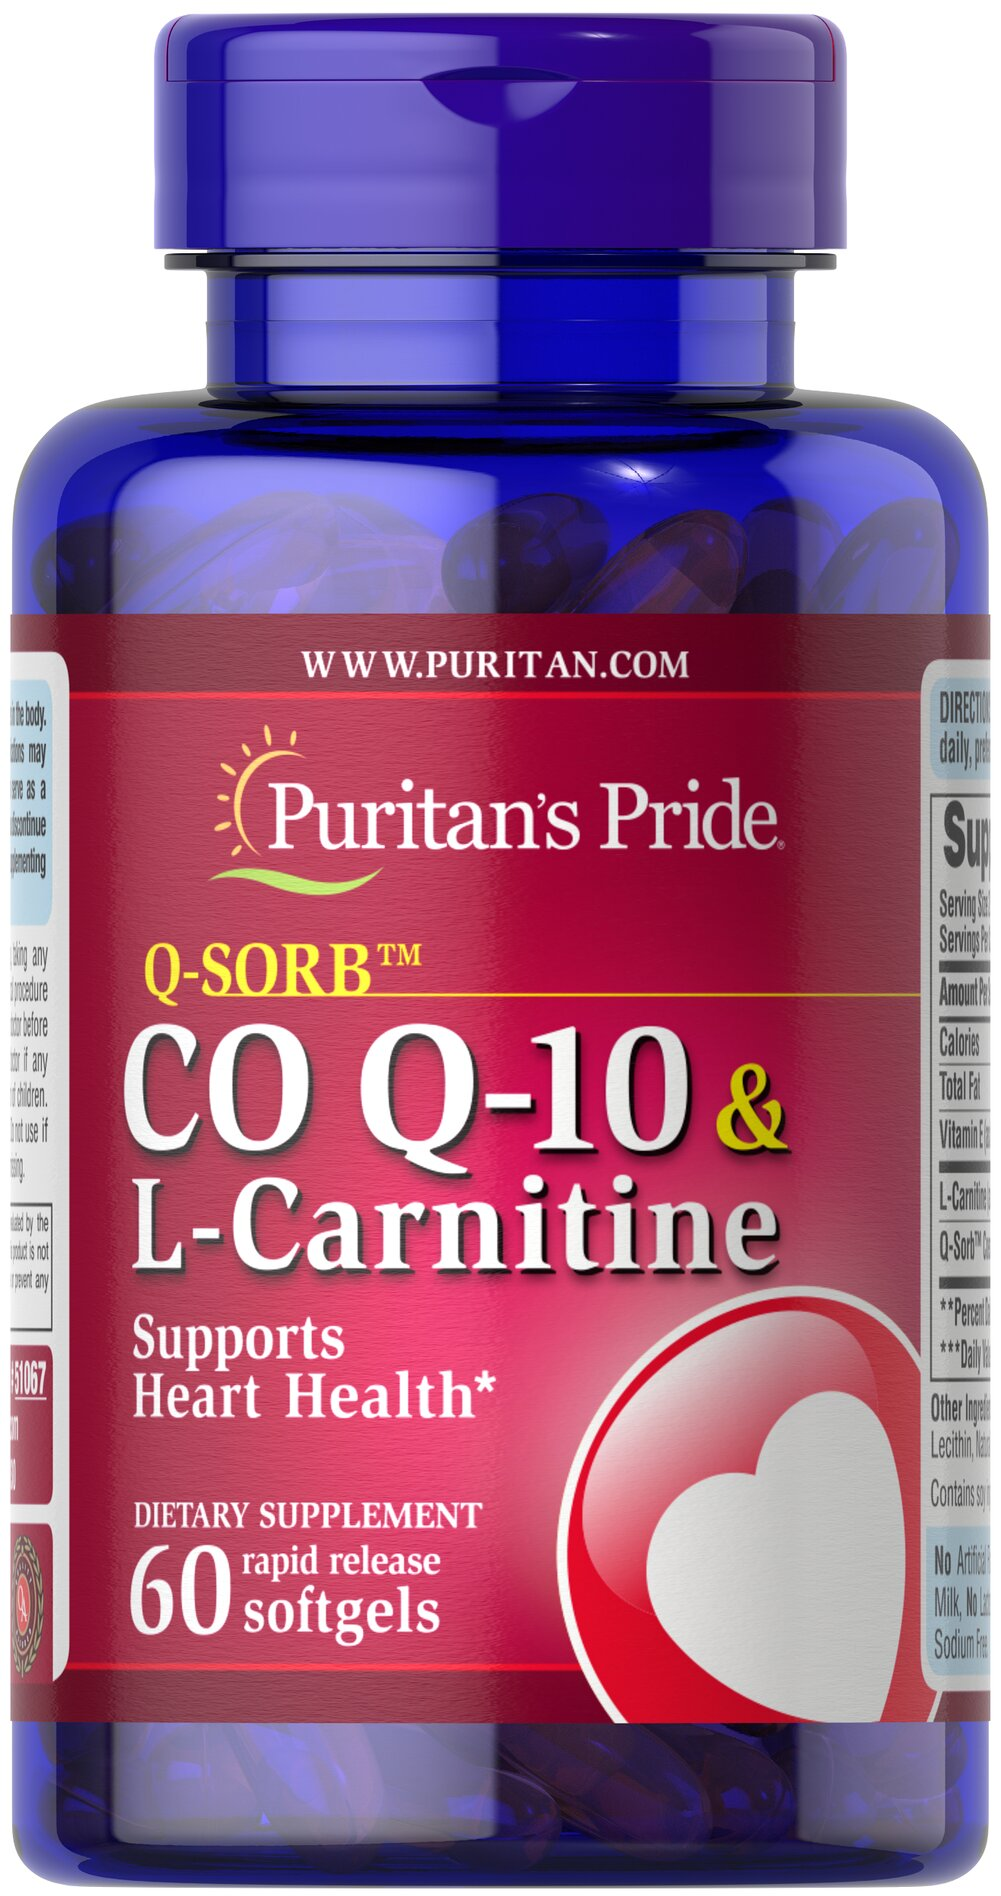 Co Q-10 30 mg plus L-Carnitine 250 mg <p>Provides powerful nutrients that support your heart**</p><p>Supports energy production**</p><p>Statin drugs can reduce Co Q-10 levels in the body, so taking Co Q-10 & L-Carnitine can replenish what Statin drugs can deplete++</p><p></p><p>++Note: Co Q-10 is not intended to serve as a replacement for Statin therapy, nor should you discontinue taking any prescribed medications while supplementing